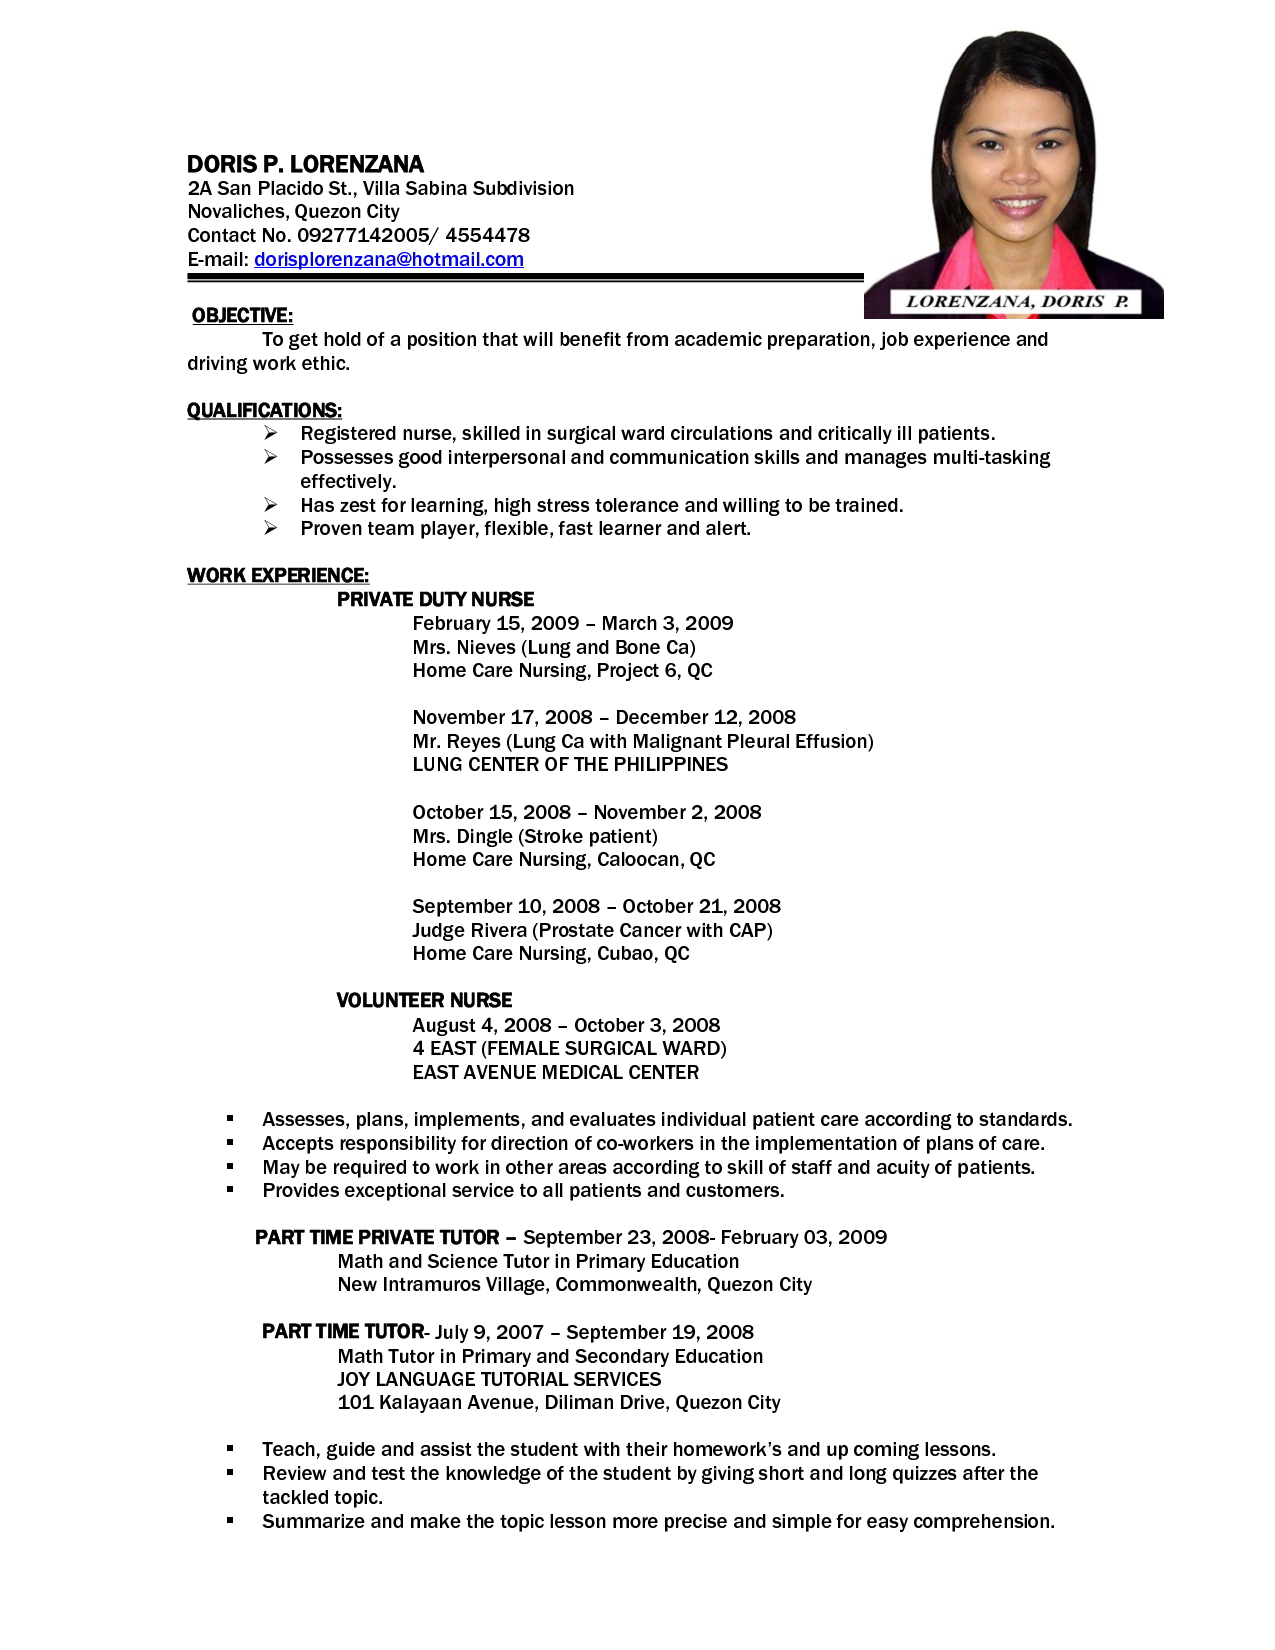 Example of resume format for job